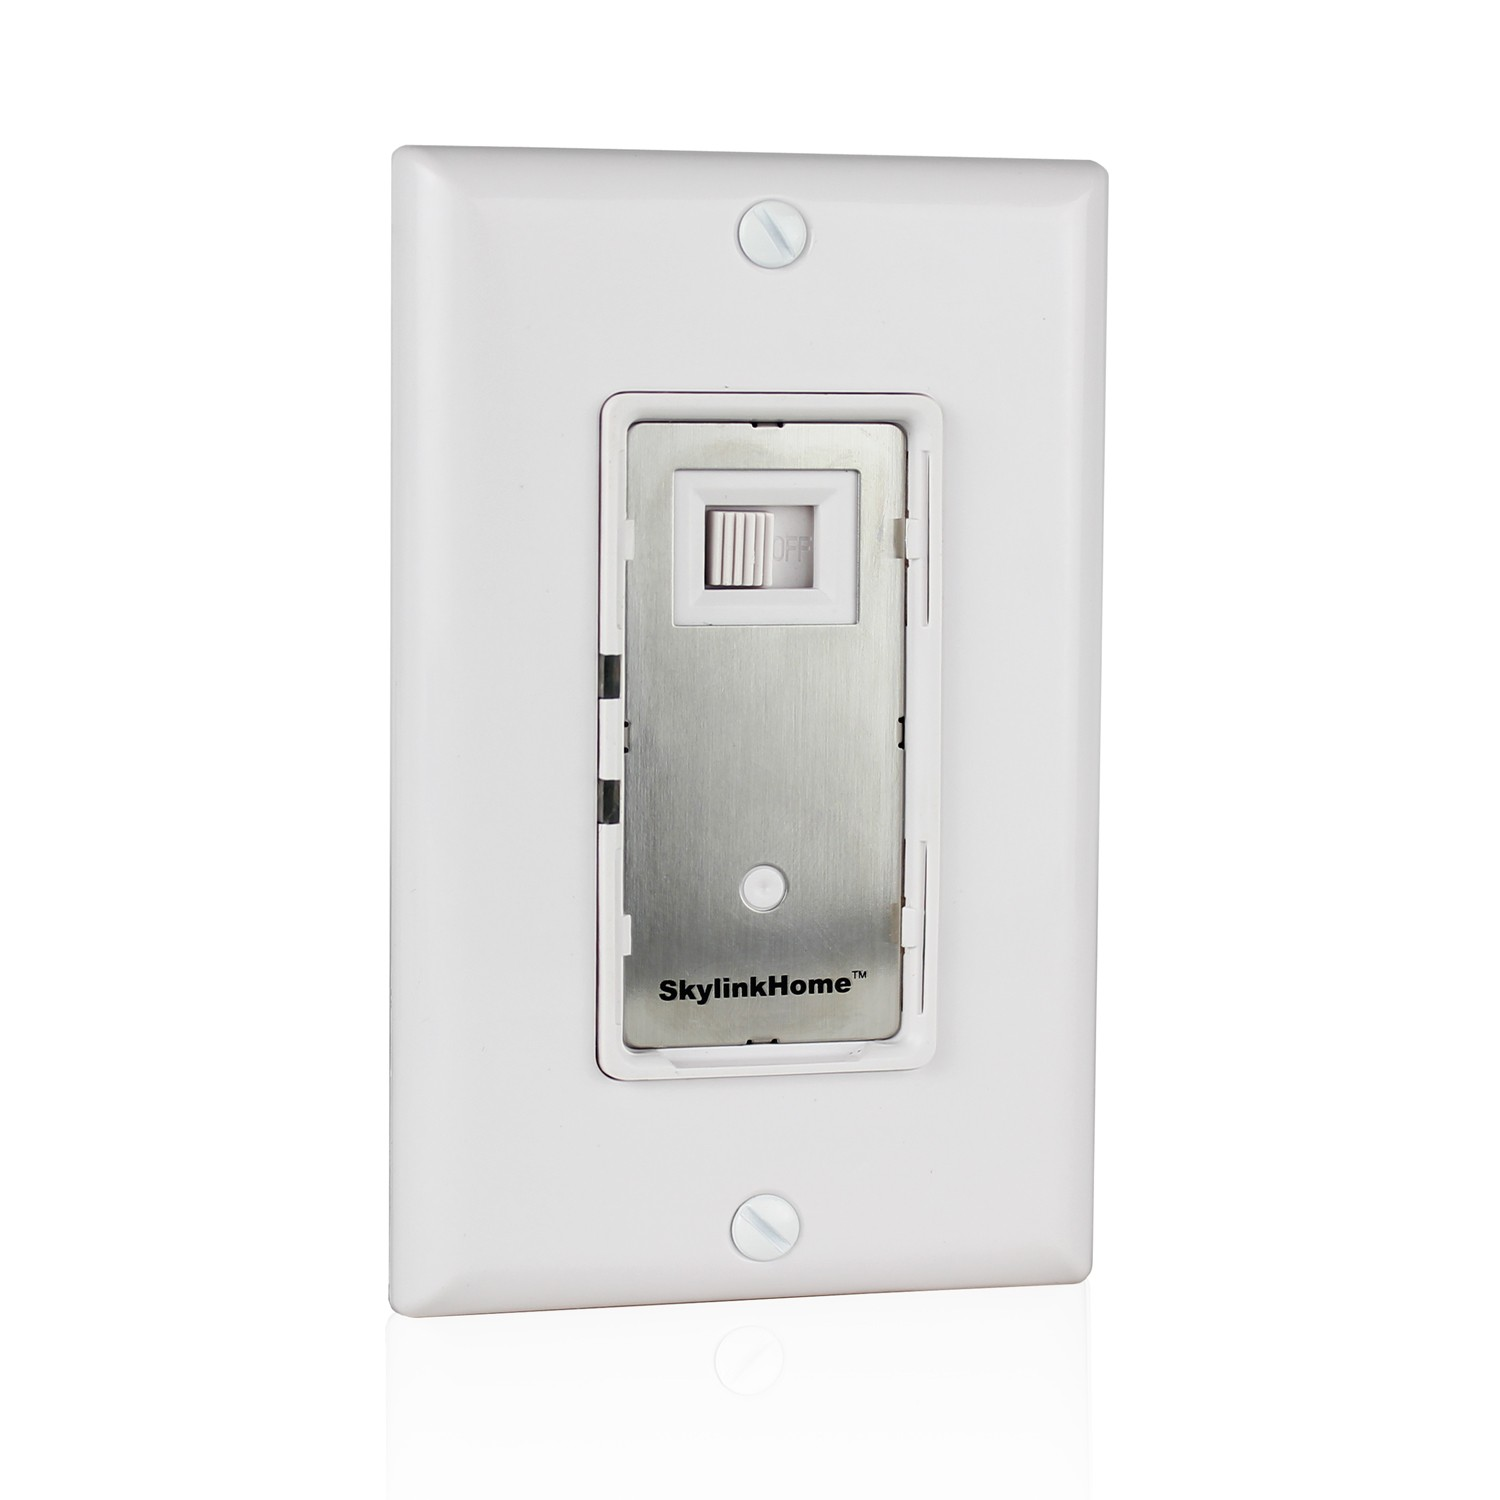 skylinkhome wr 001 on off dimmer wall switch receiver easy installation without neutral wire. Black Bedroom Furniture Sets. Home Design Ideas